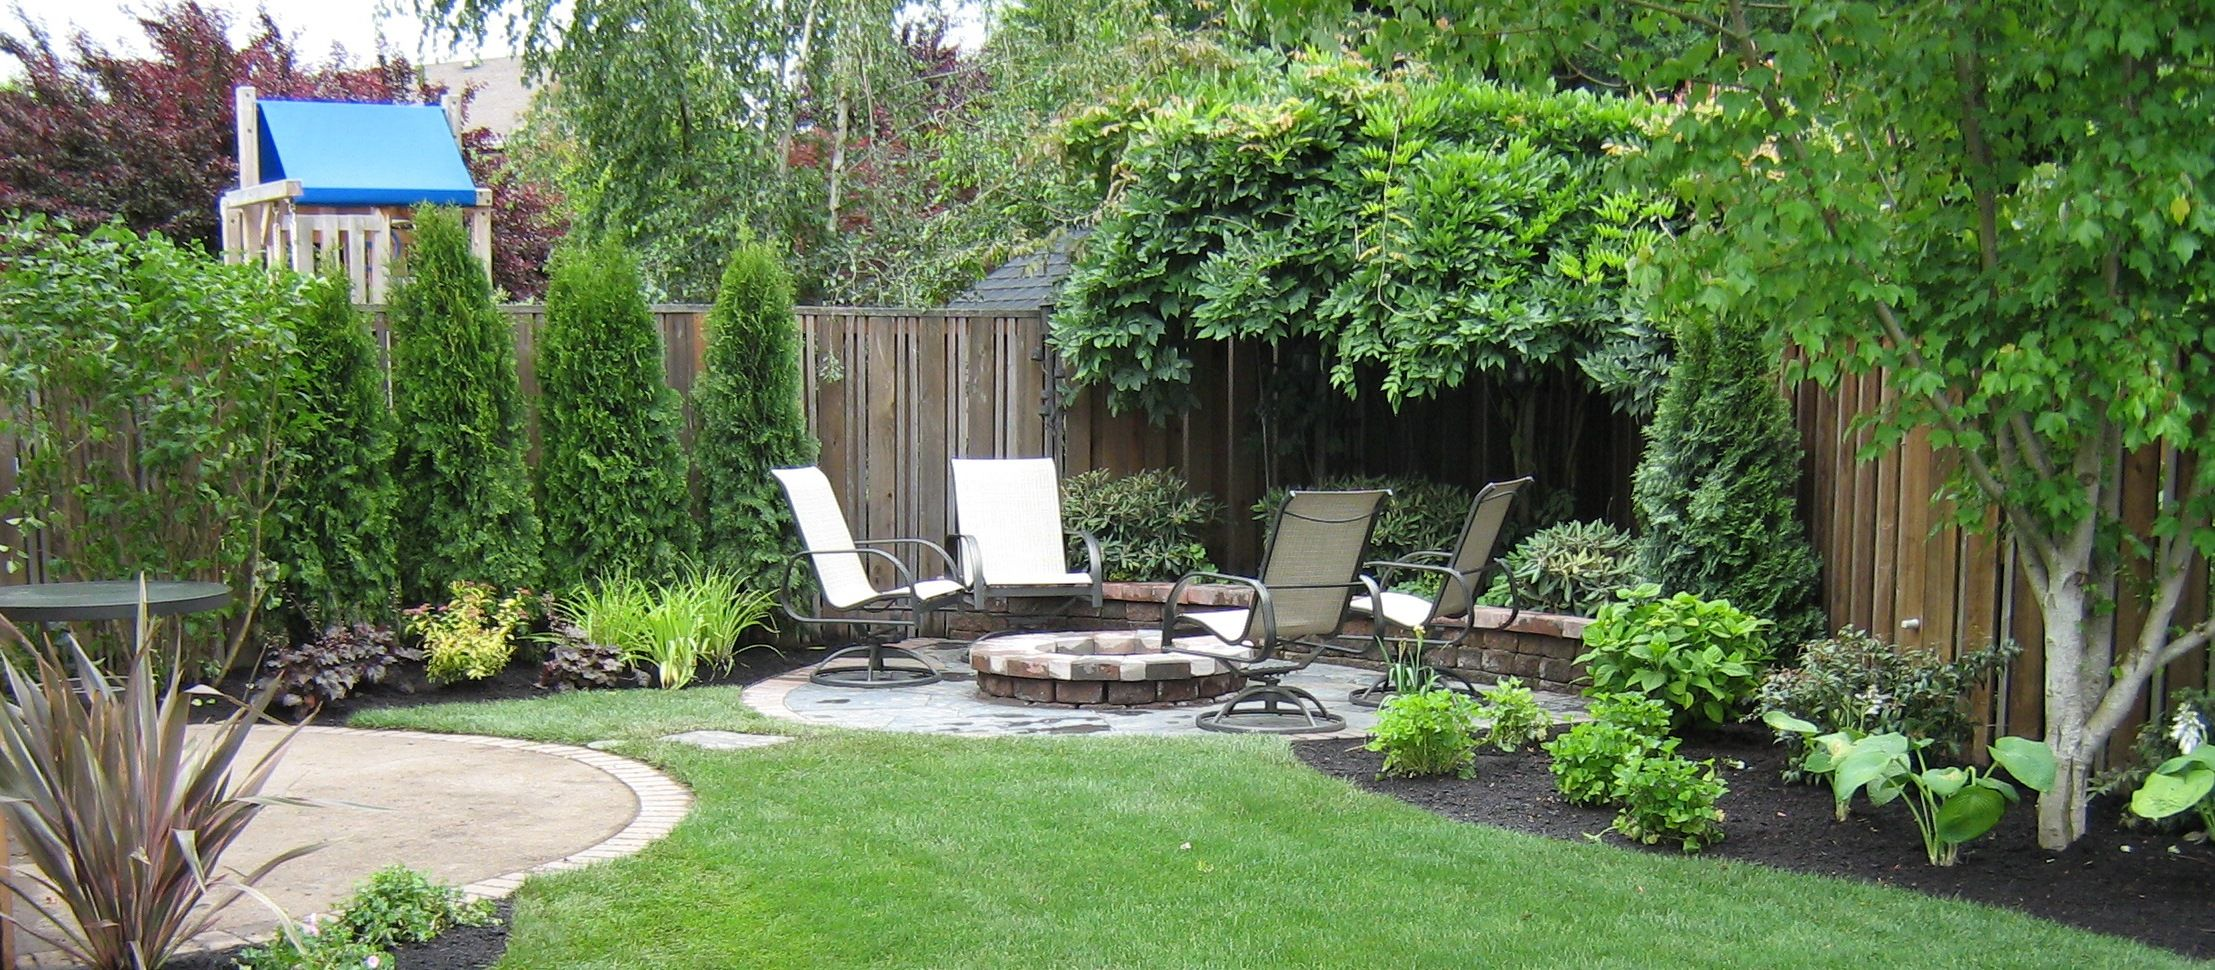 Small backyard landscaping ideas photos garden design Large backyard design ideas